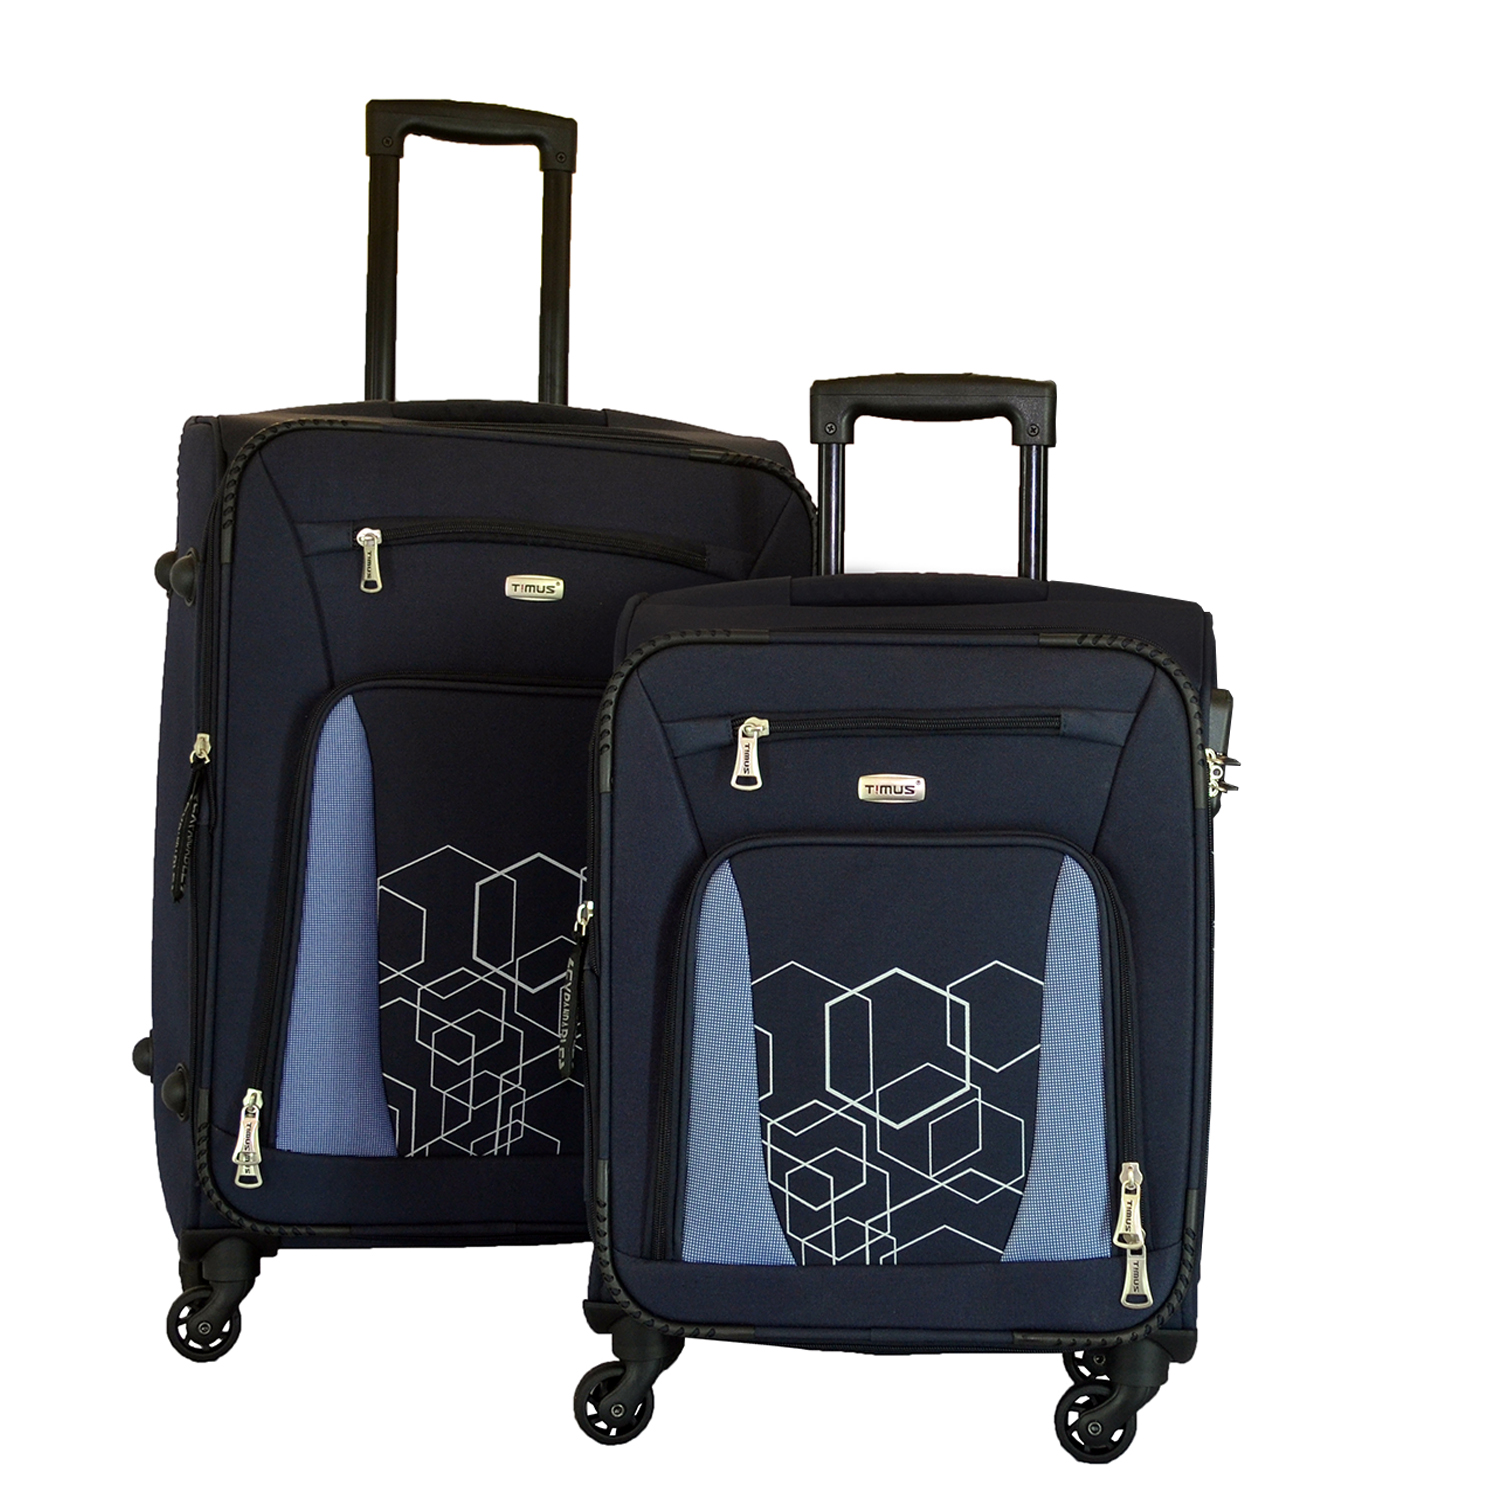 Timus Morocco Spinner 55 65cm 4 Wheel Trolley Suitcase Travel Luggage Expandable Cabin and Check in Luggage  Blue